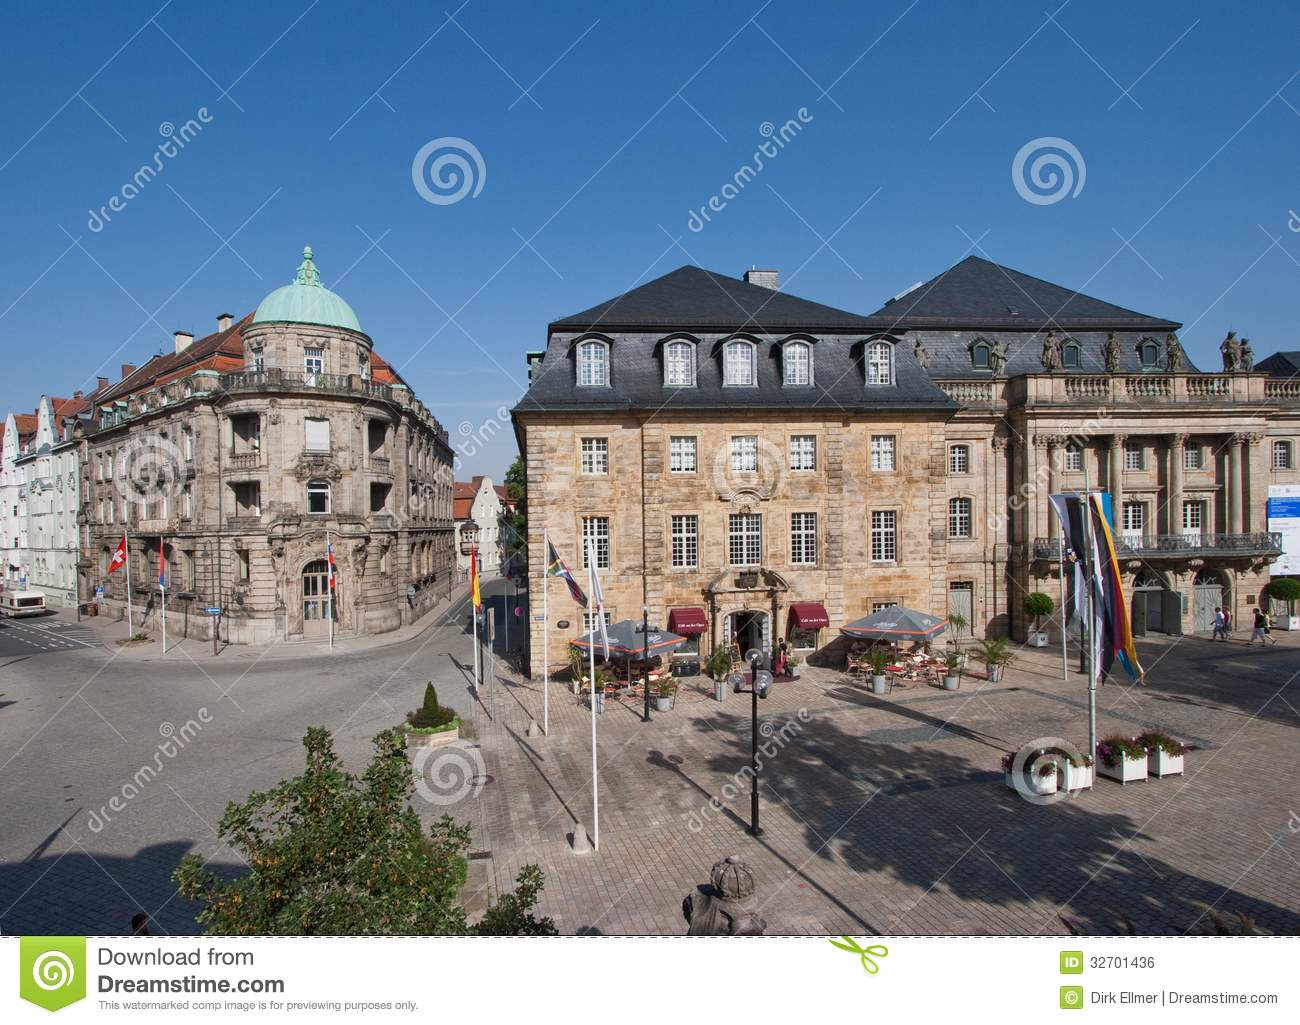 Bayreuth old town - Opera House